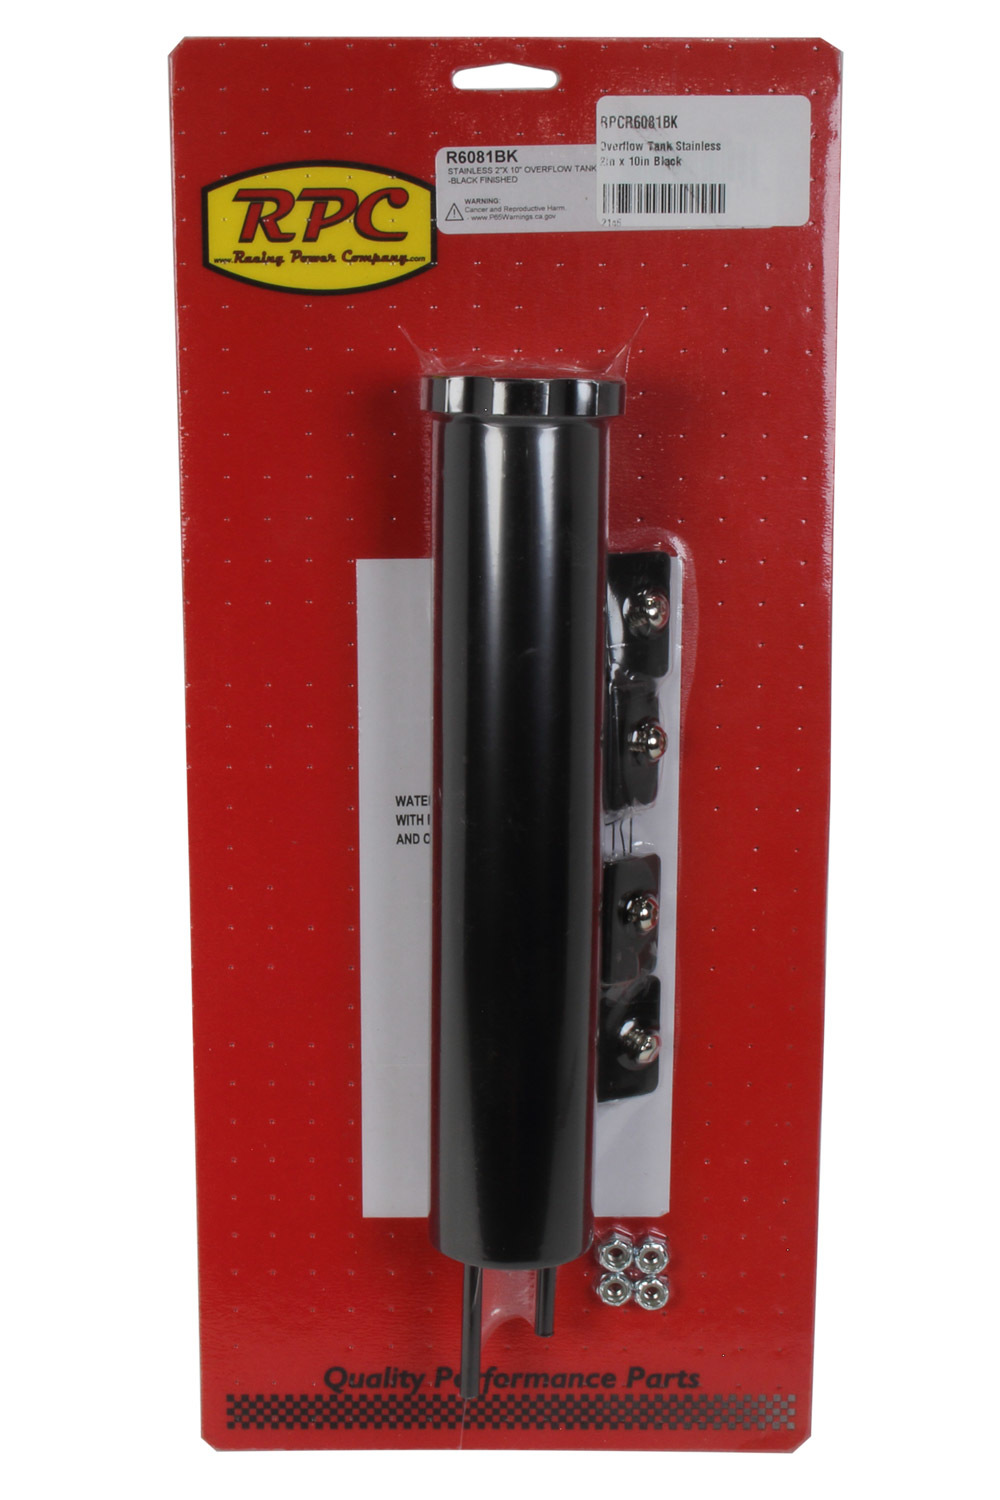 Racing Power Co-packaged Overflow Tank Stainless 2in x 10in Black